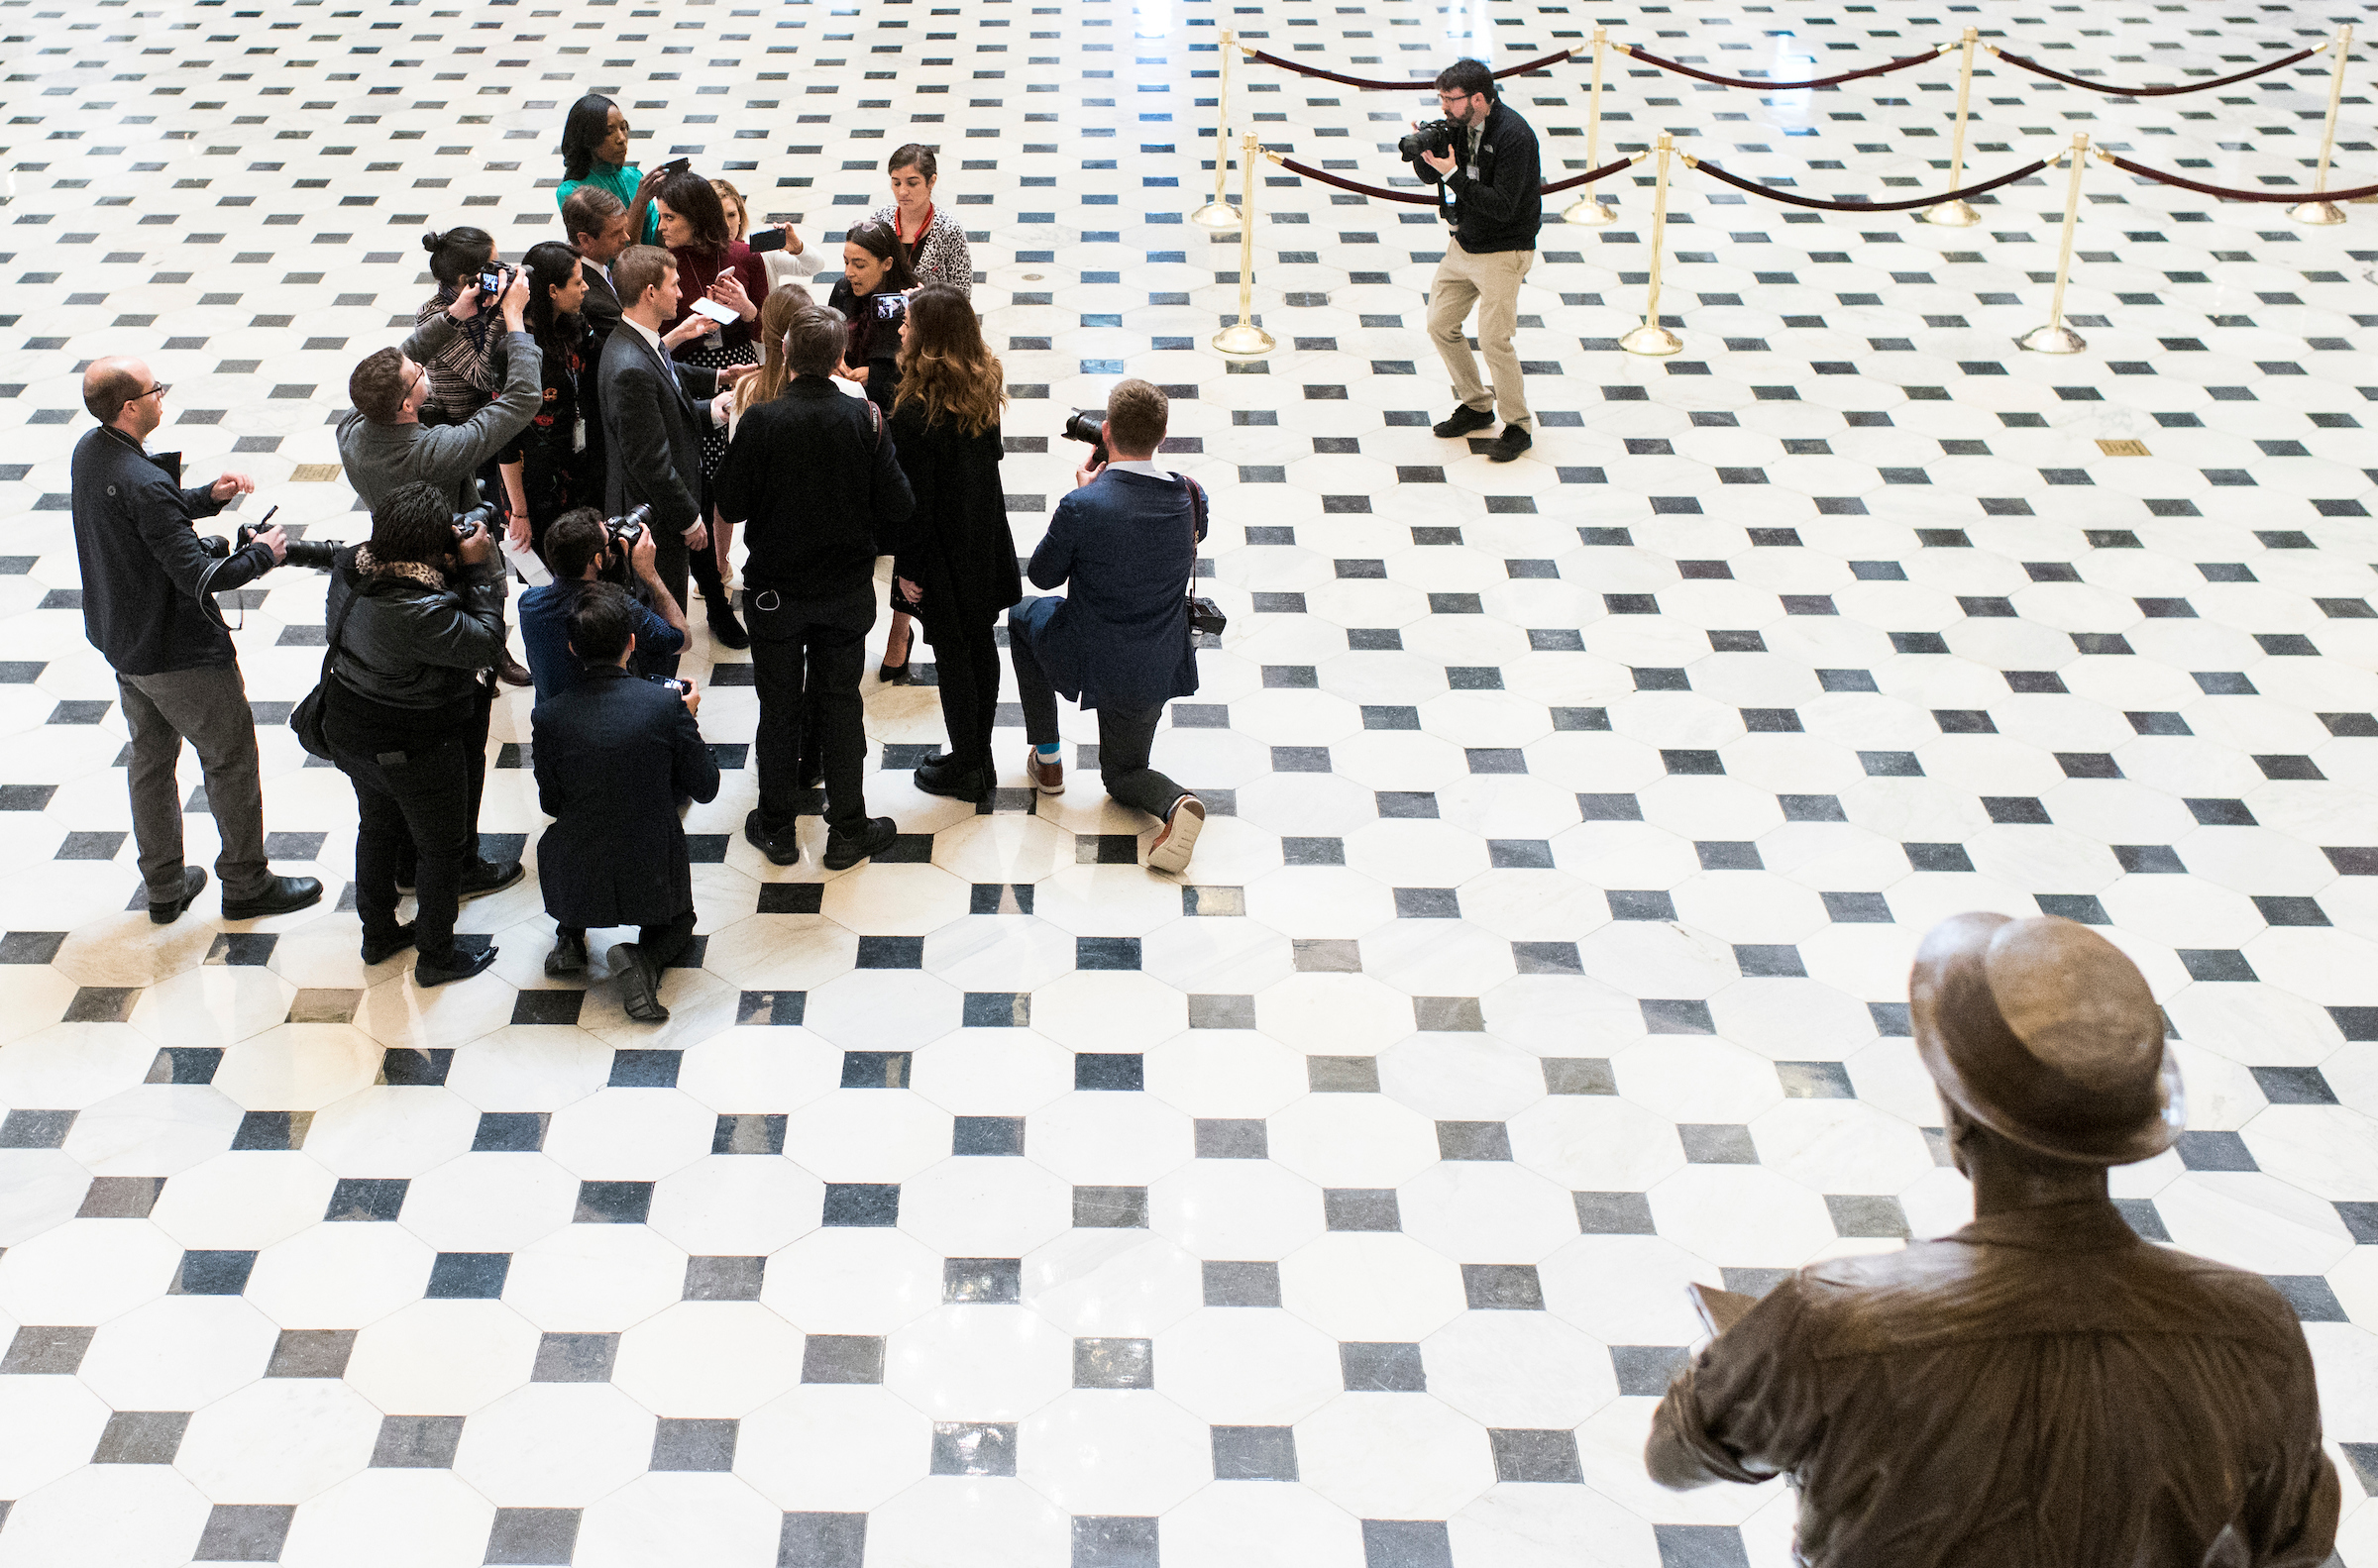 Rep. Alexandria Ocasio-Cortez, D-N.Y., stops to talk to reporters in Statuary Hall on Wednesday as the House begins debate on the articles of impeachment against President Donald Trump. (Bill Clark/CQ Roll Call)